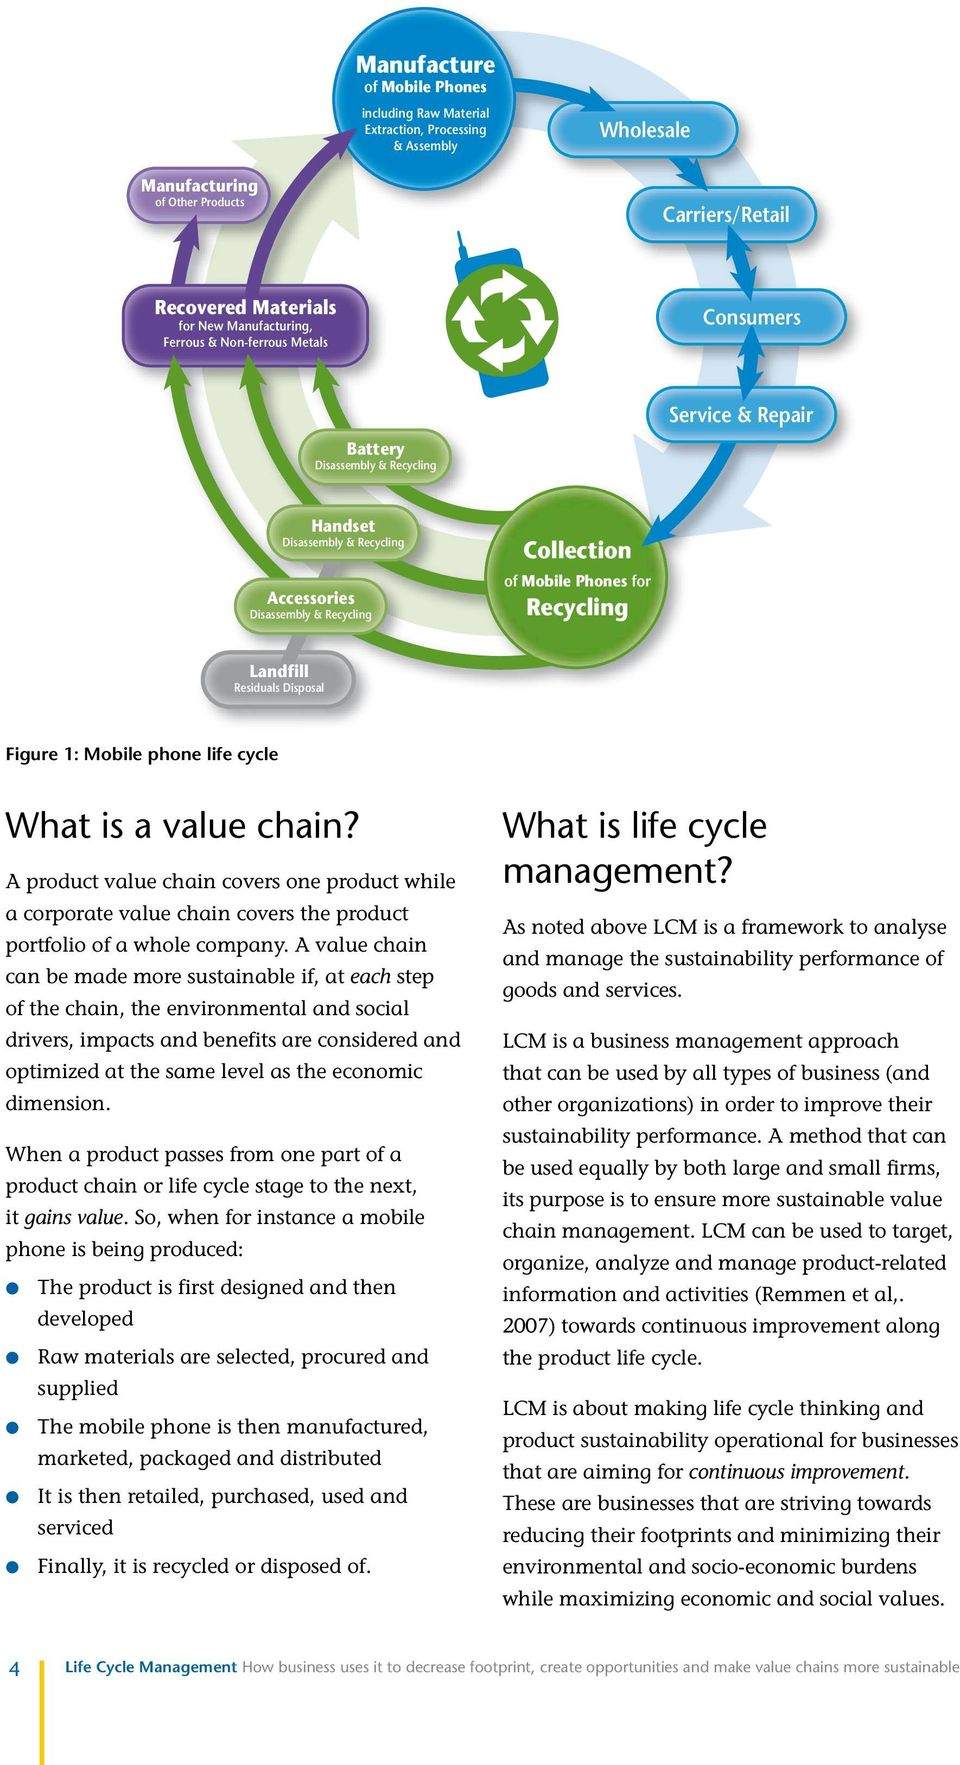 Residuals Disposal Figure 1: Mobile phone life cycle What is a value chain? A product value chain covers one product while a corporate value chain covers the product portfolio of a whole company.